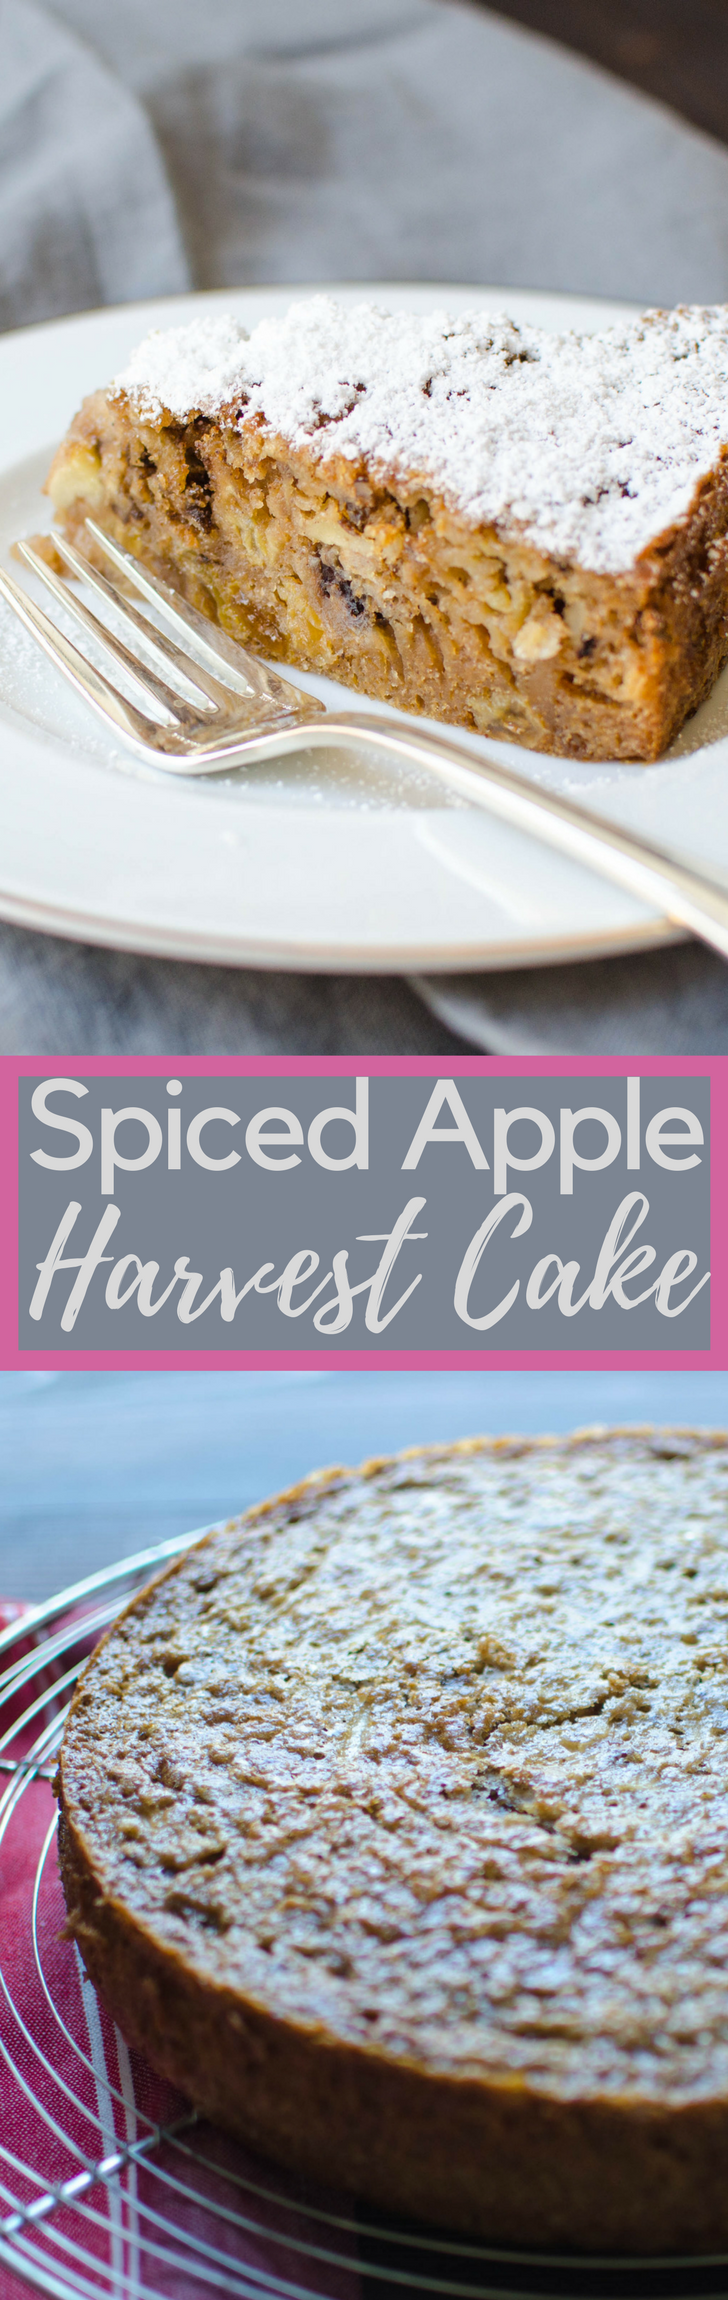 Looking for an easy fall apple dessert recipe?  This spiced Harvest Cake is moist and loaded with fruit and nuts.